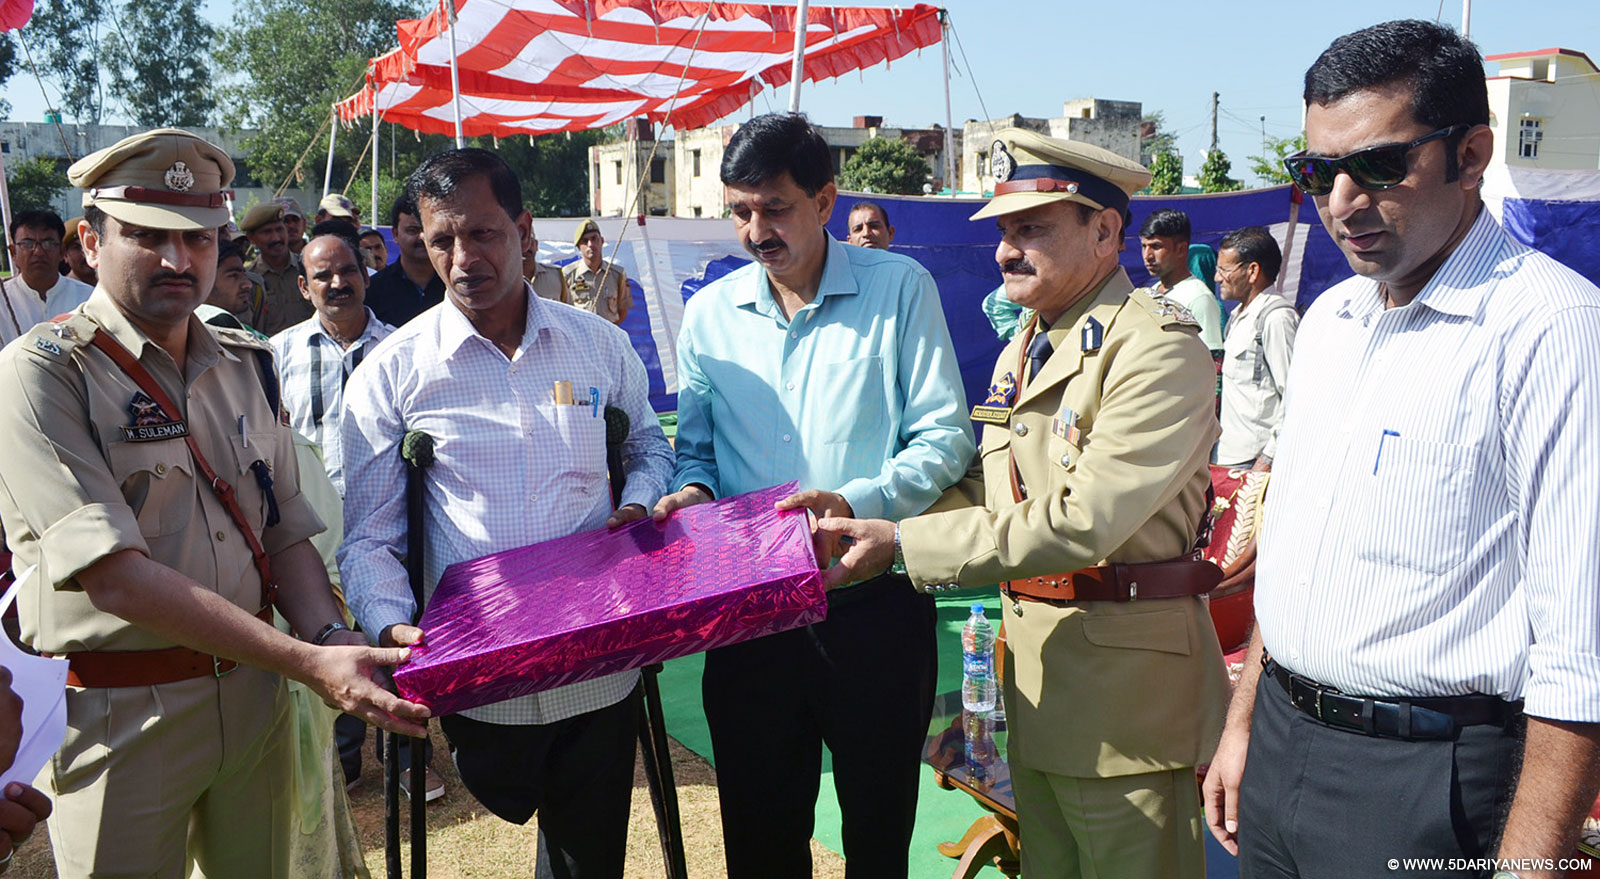 Police martyrs remembered at Udhampur